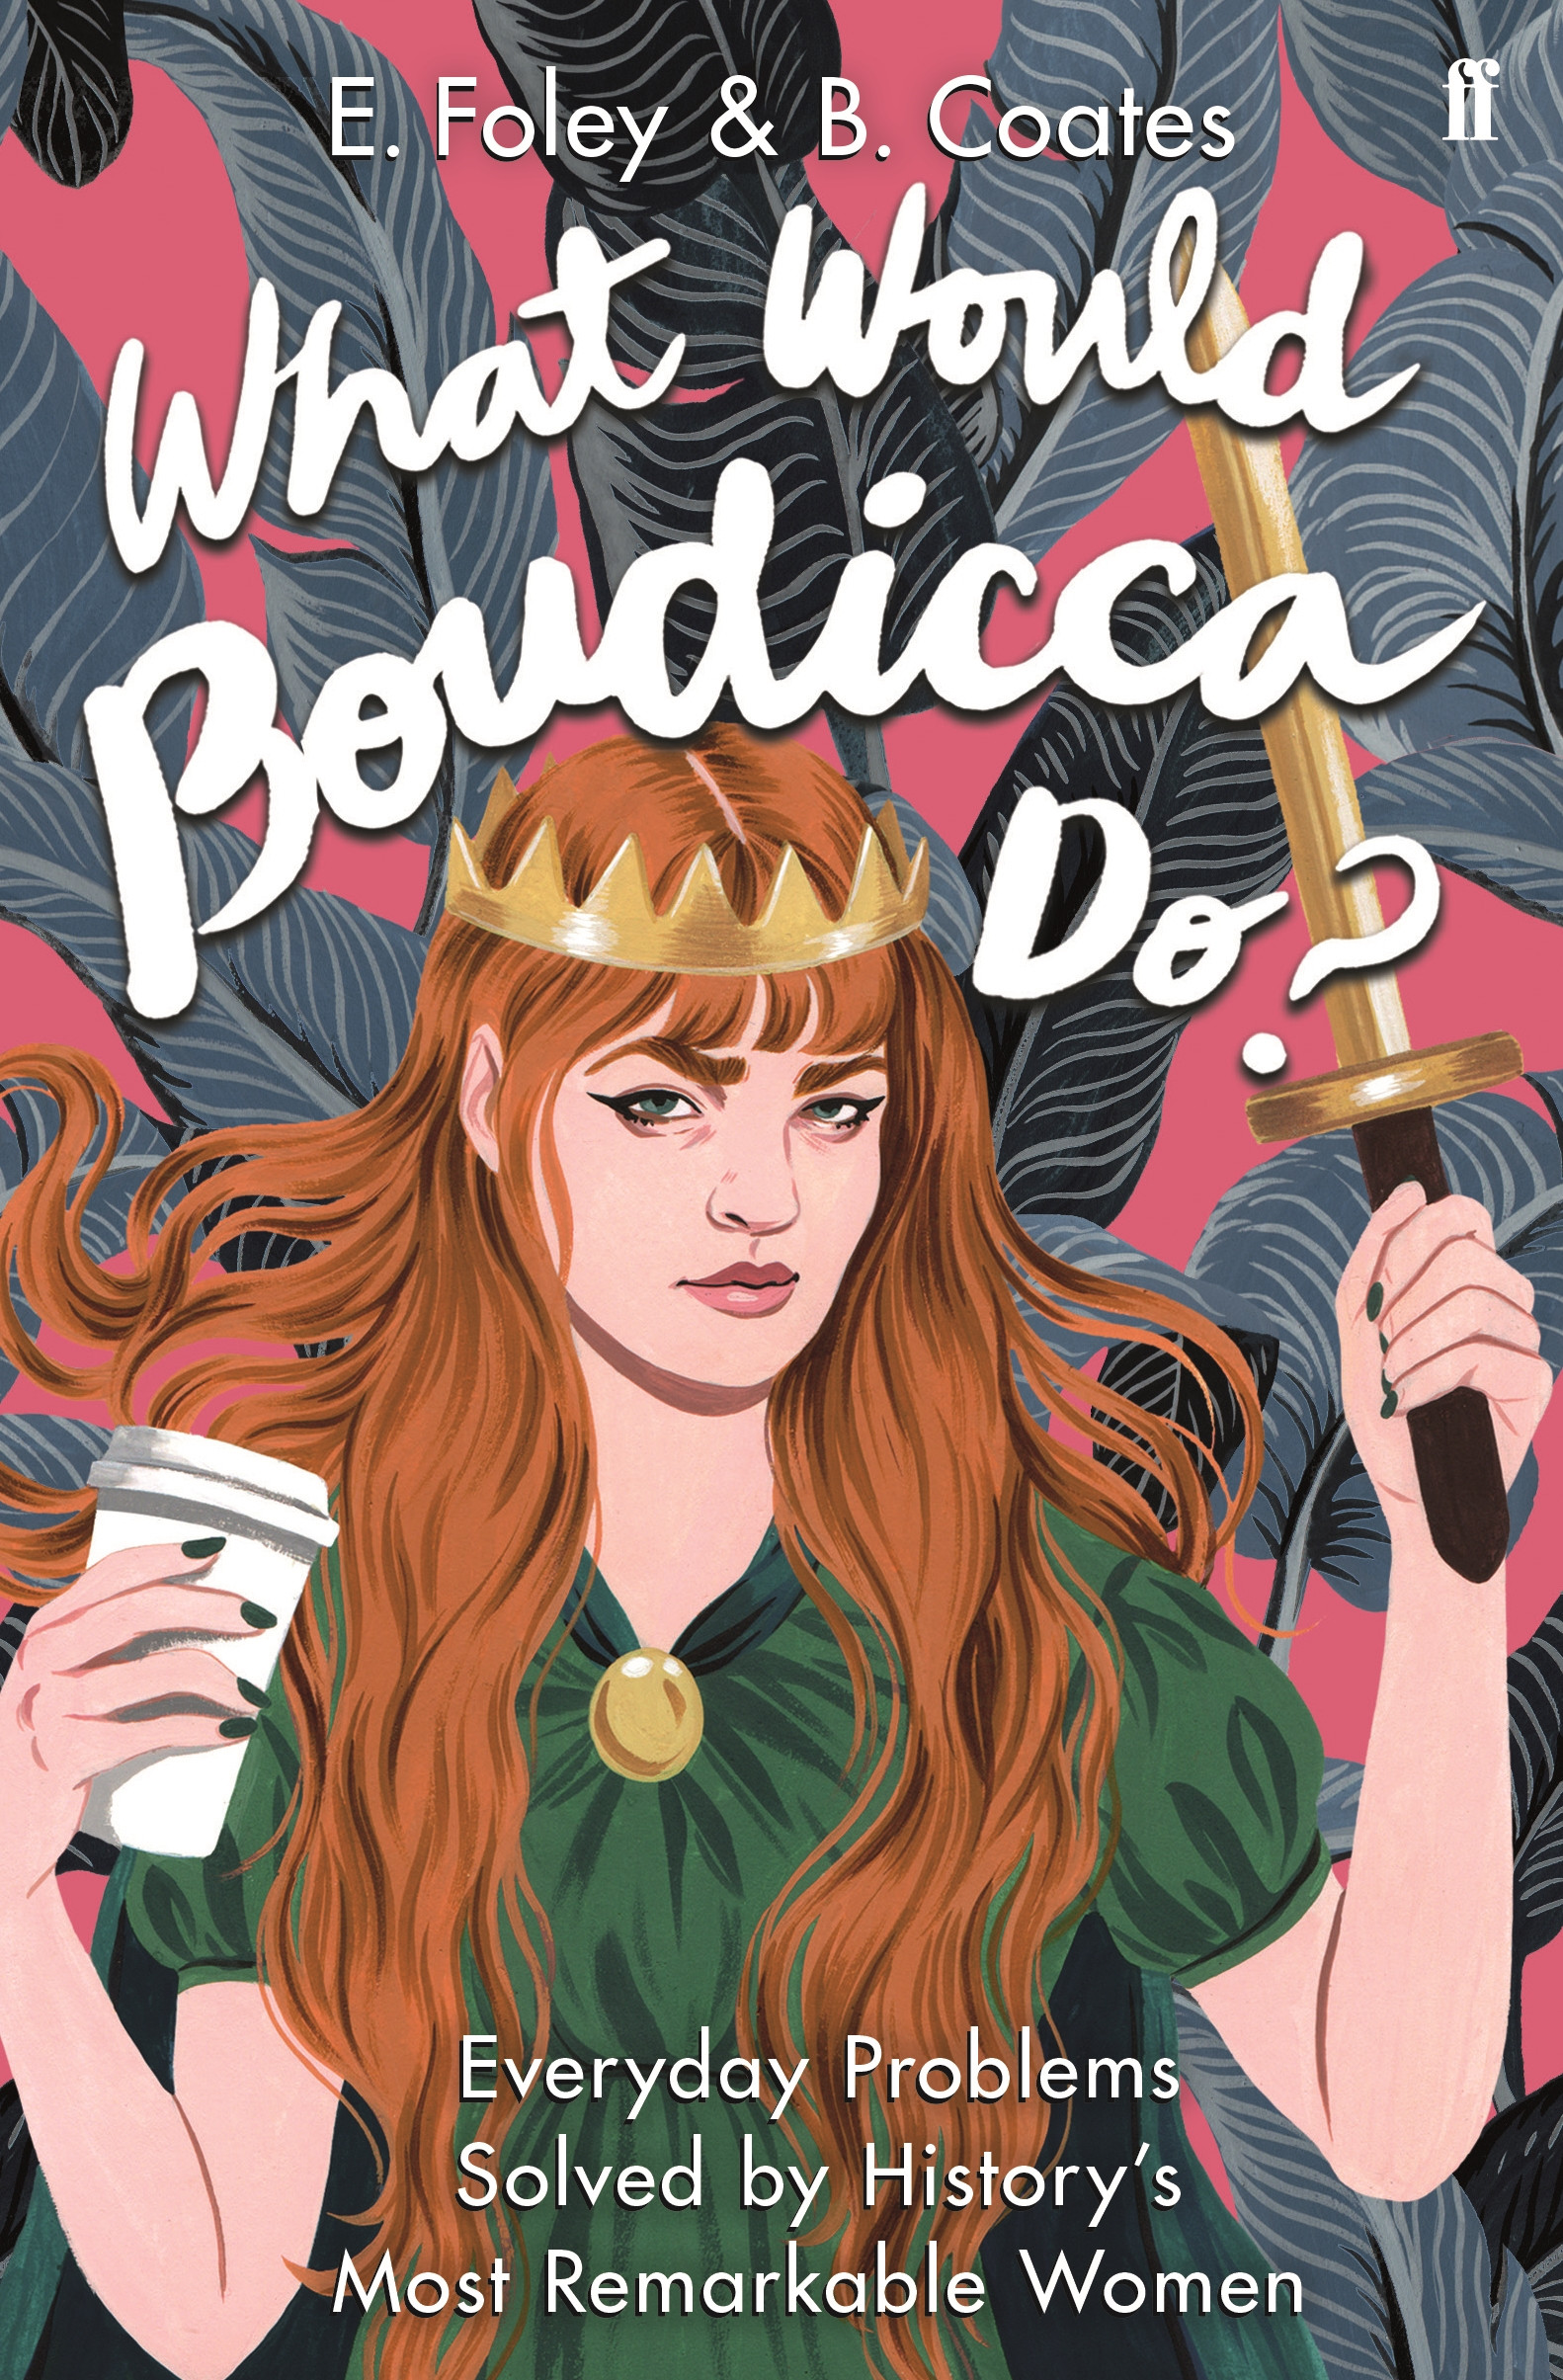 What Would Boudicca Do?: Everyday Problems Solved by History's Most Remarkable Women by Elizabeth Foley